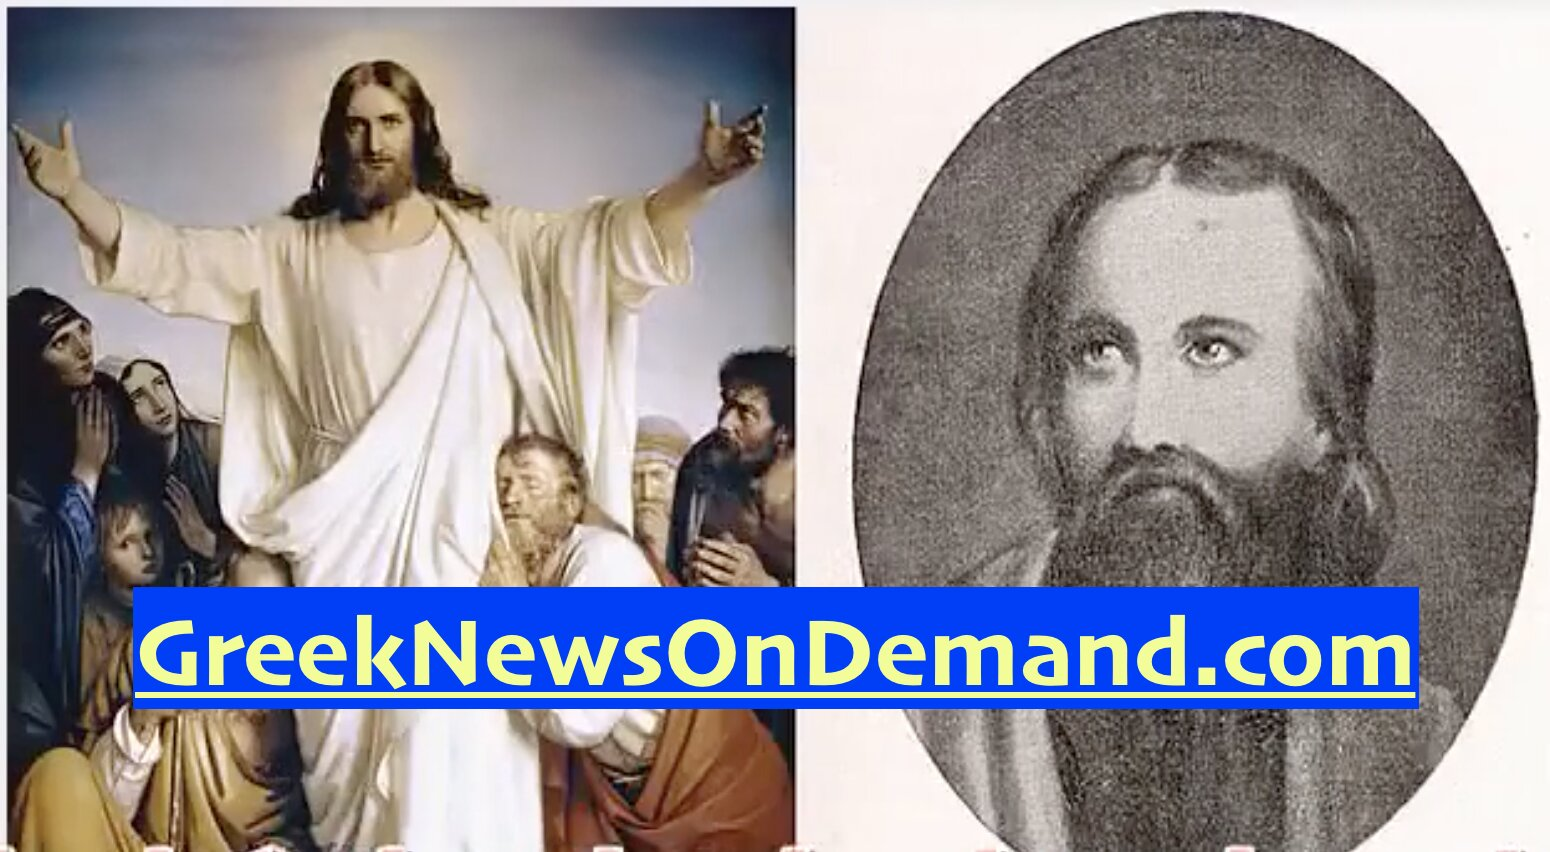 Jesus Christ 'was GREEK not Jewish', explosive Amazon Prime doc claims – Daily News